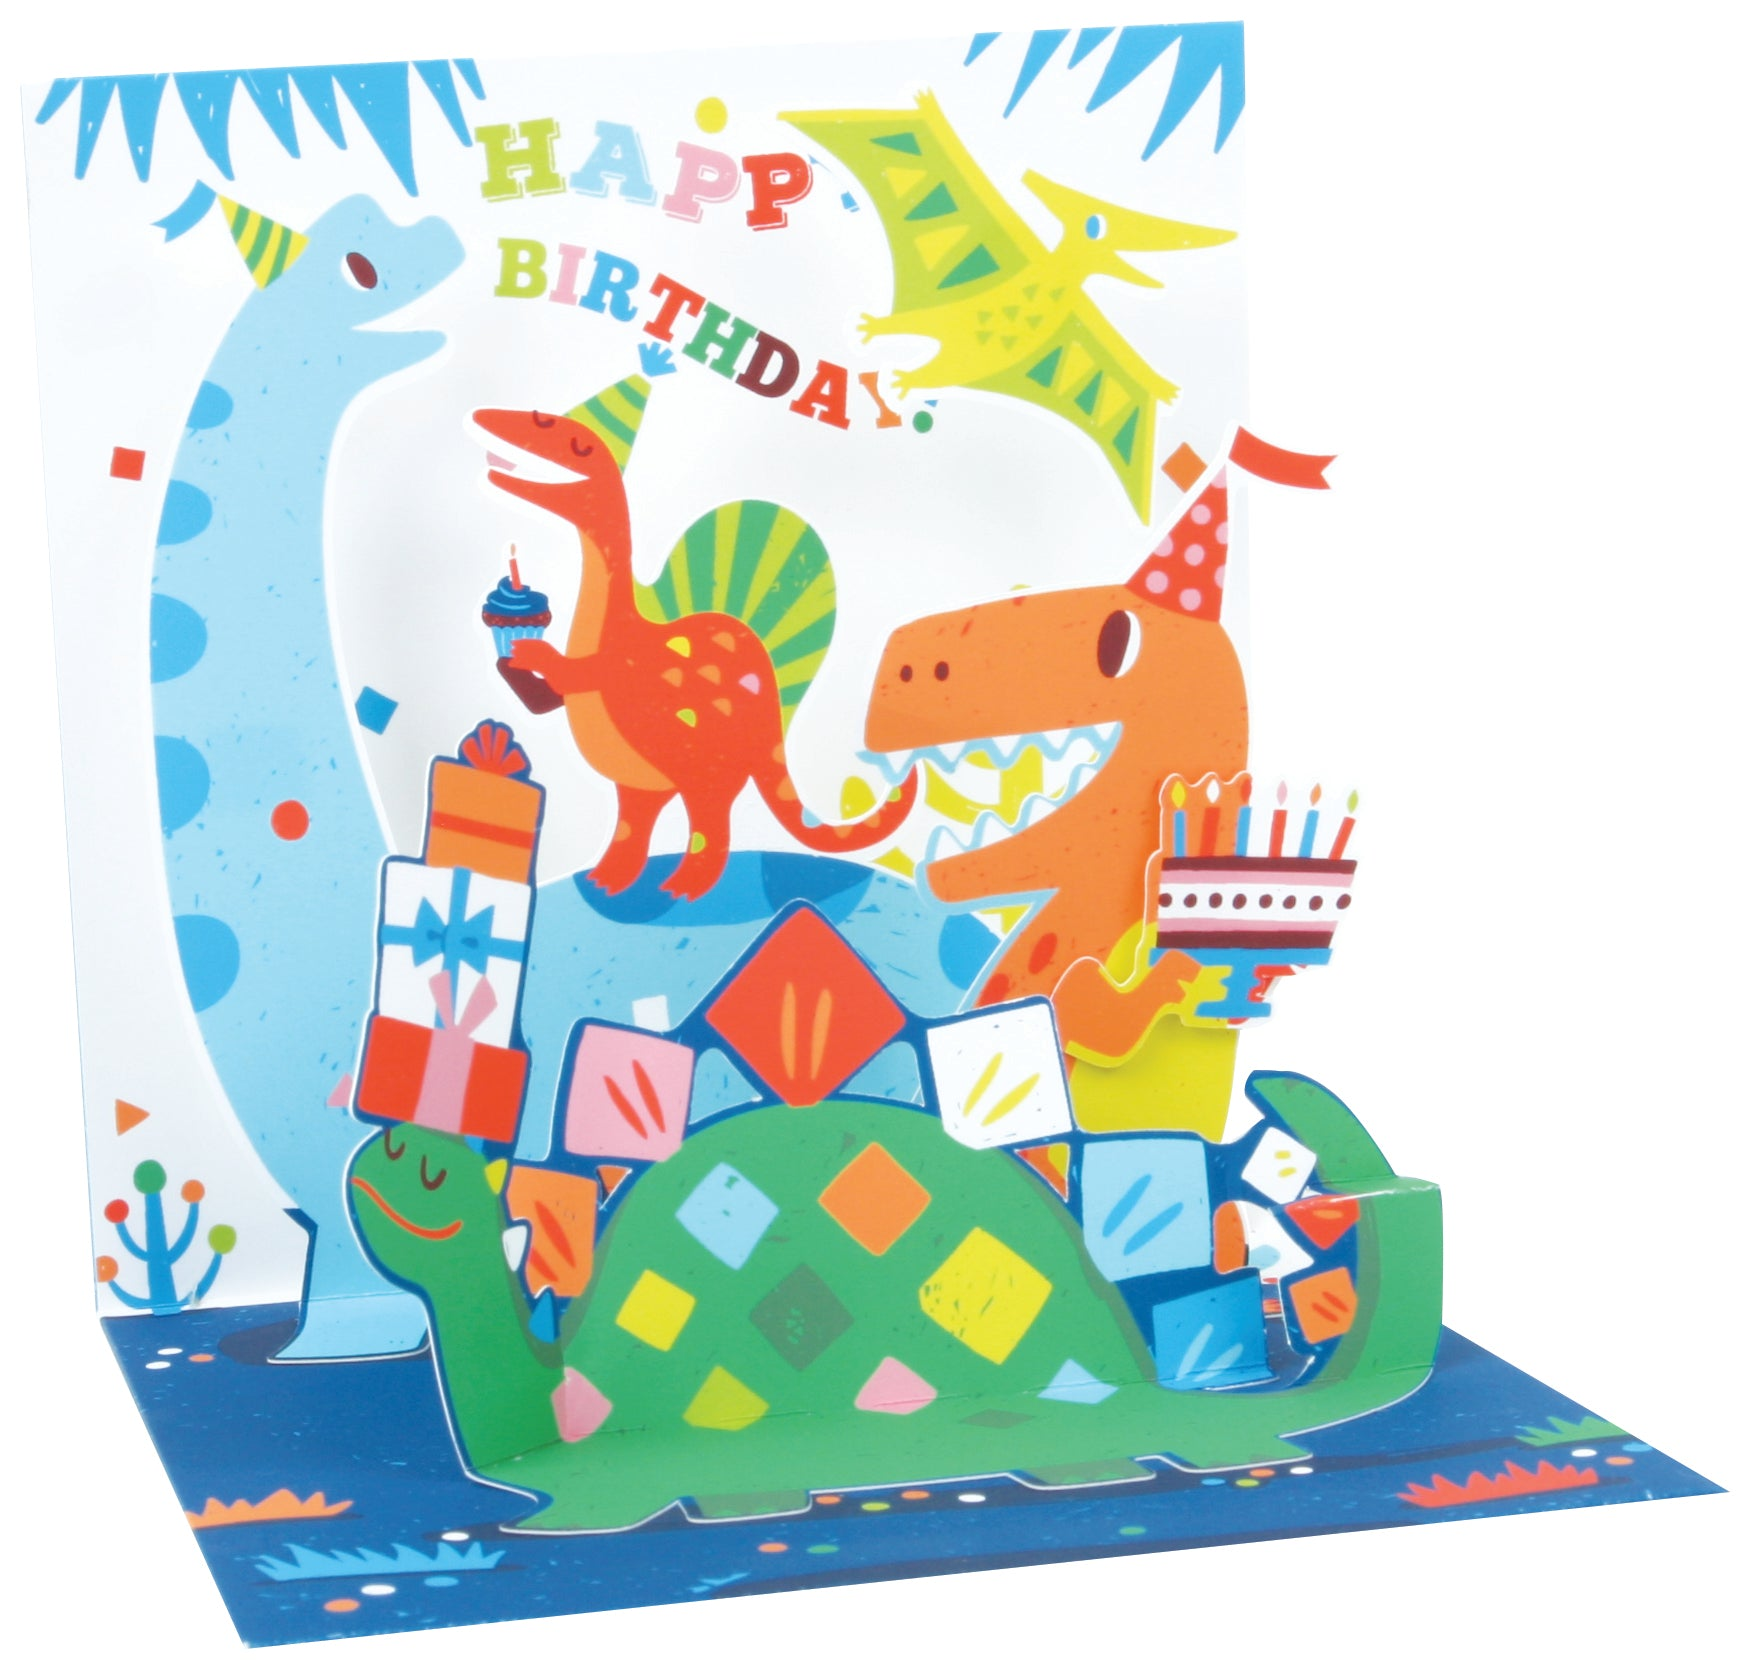 Dinosaur Party  Pop-Up Card - Heart of the Home PA